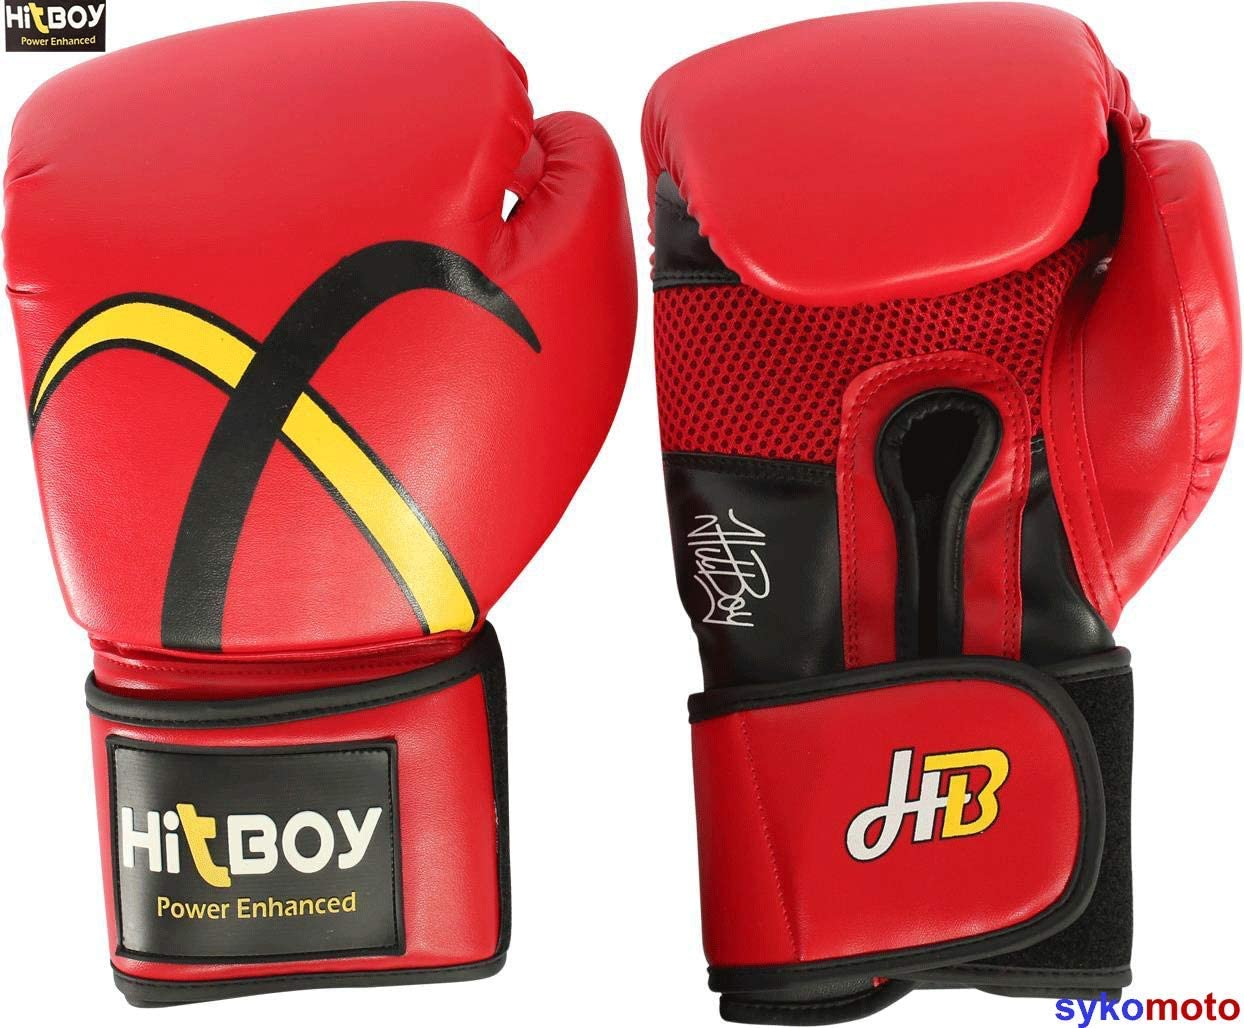 EVO Maya Hide Leather Pro GEL Boxing Gloves For MMA Punch Bag Sparring Muay Thai KickBoxing Fighting Training Glove with FREE Boxing Hand Wraps